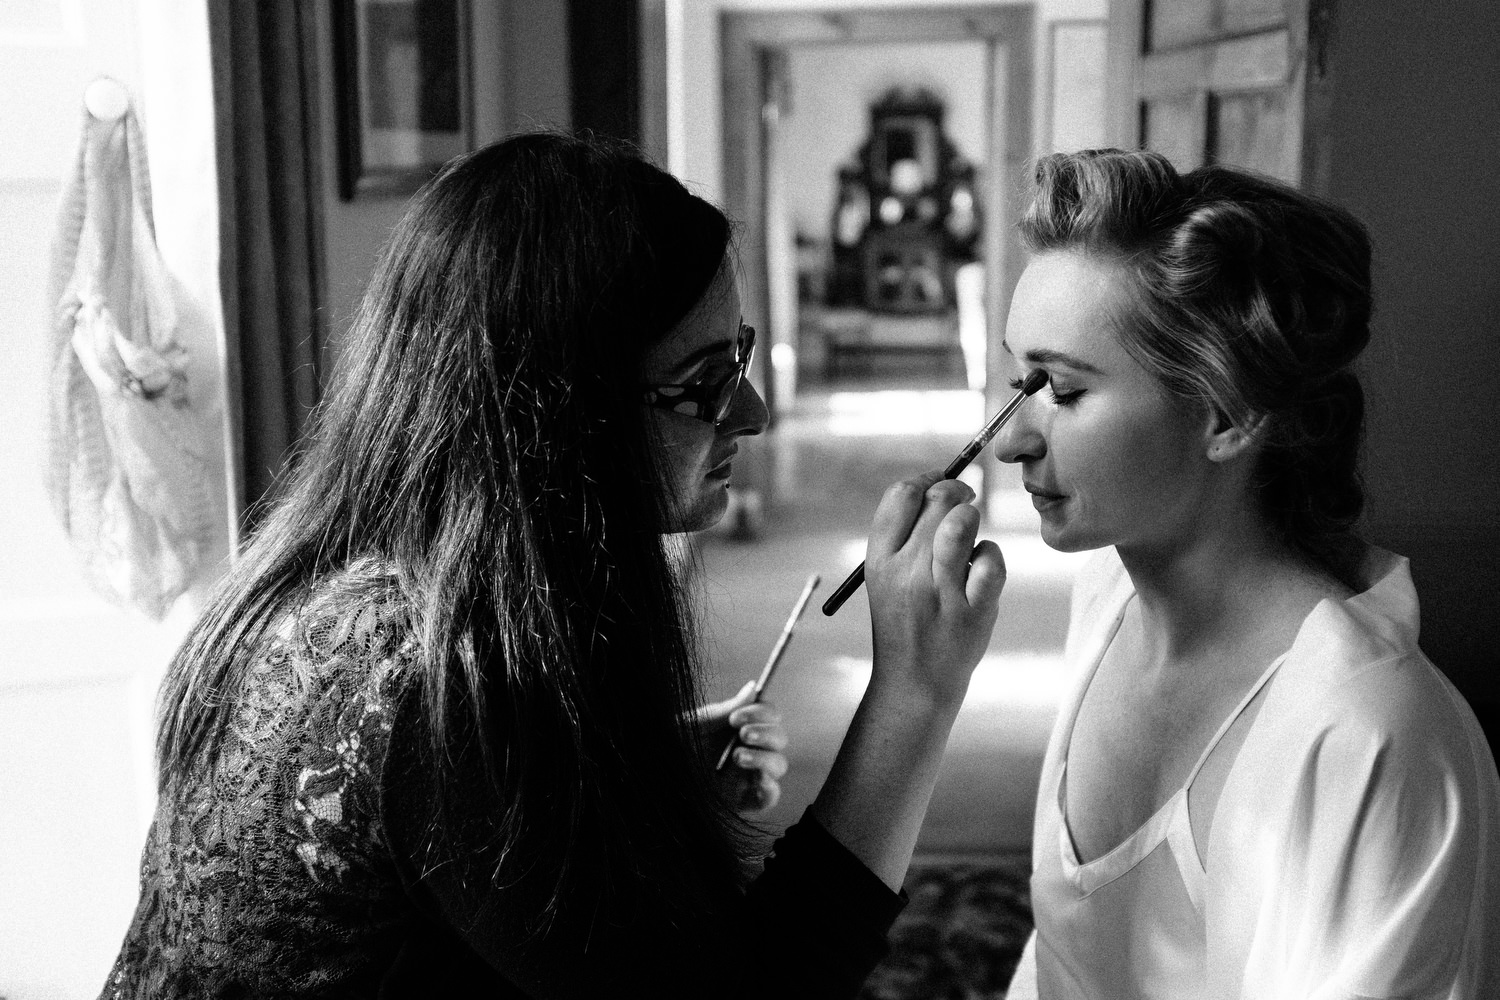 000000000000000000000045_bride_style_preparation_vintage_Hair_dress_photography_david_mcclelland_ireland_makeup_castle_hollywood_kinnity_wedding_photographer_fujifilm